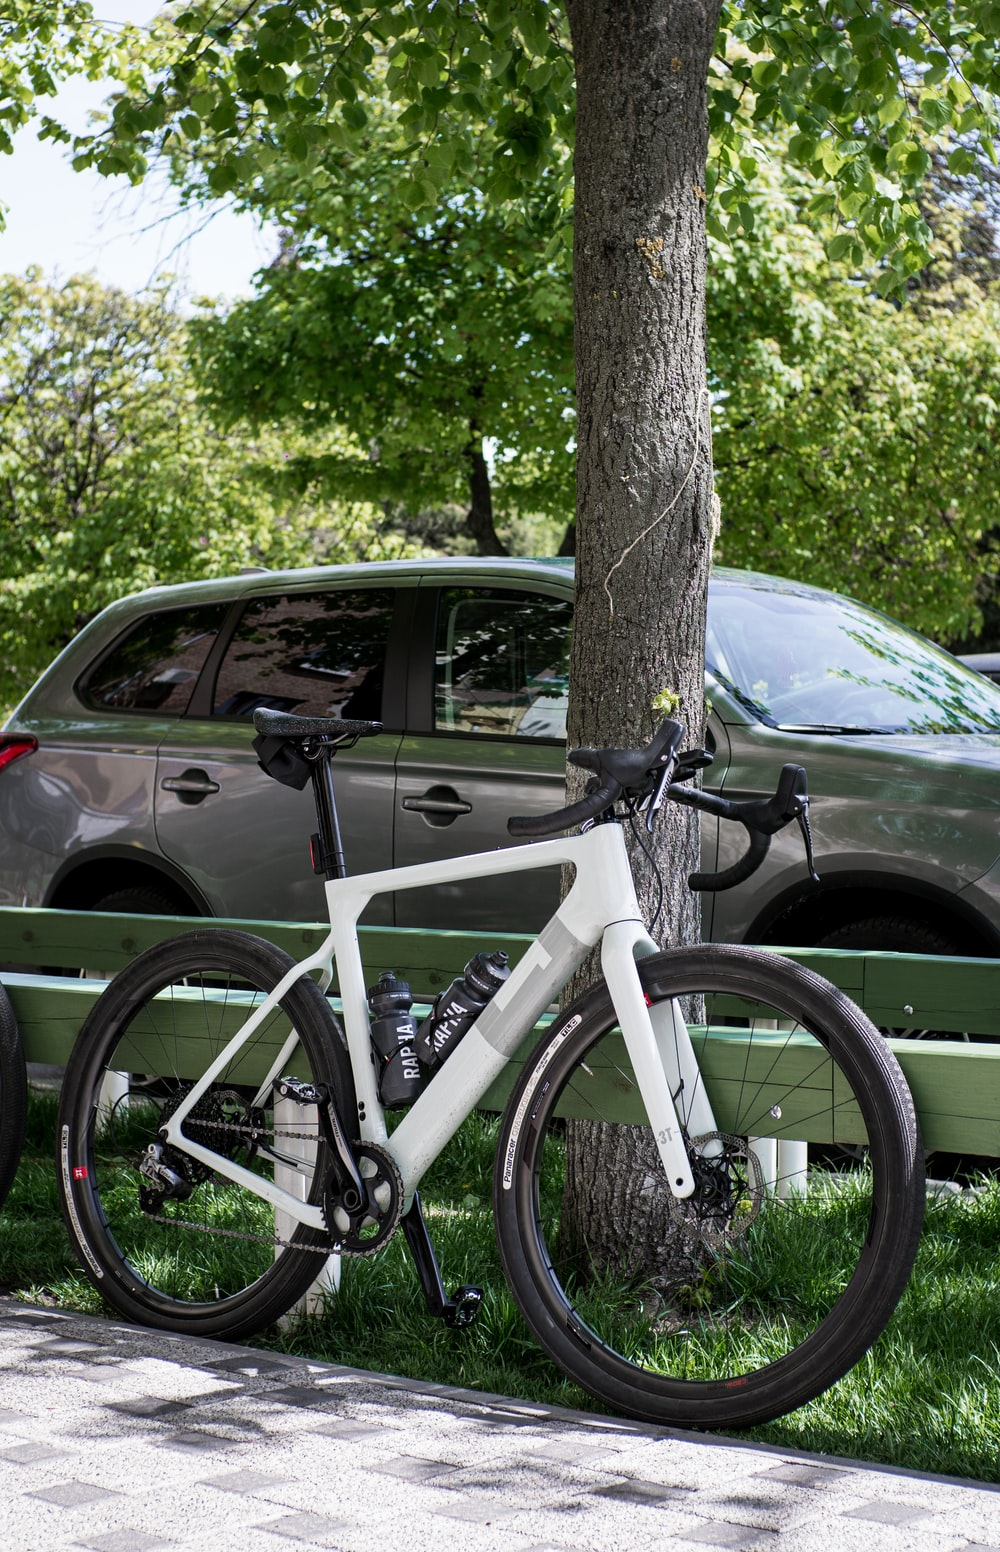 white and black mountain bike leaning on tree trunk